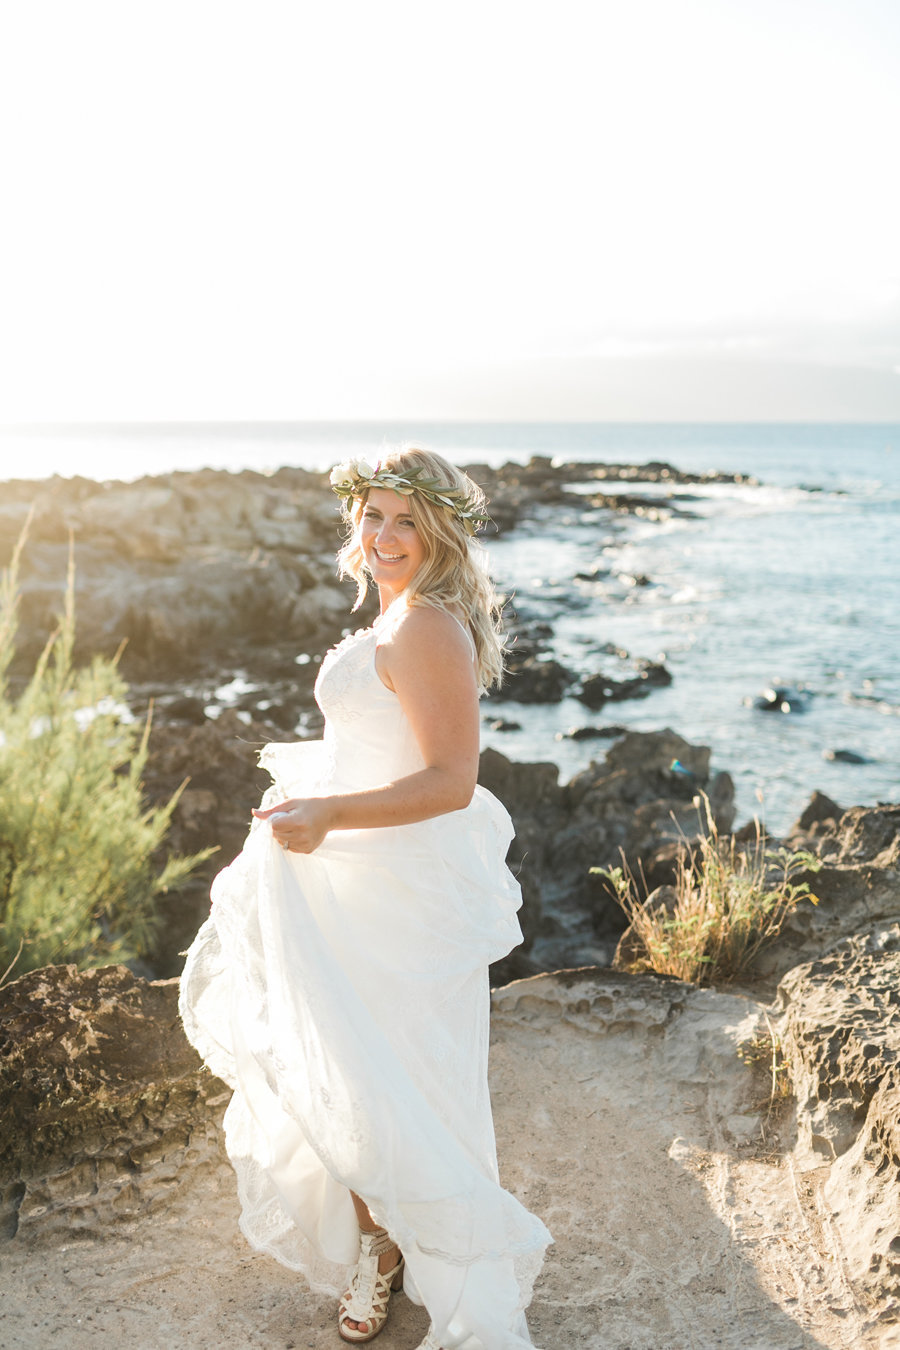 The-Ritz-Carlton-Kapalua-Maui-Wedding-Caitlin-Cathey-Photo-081